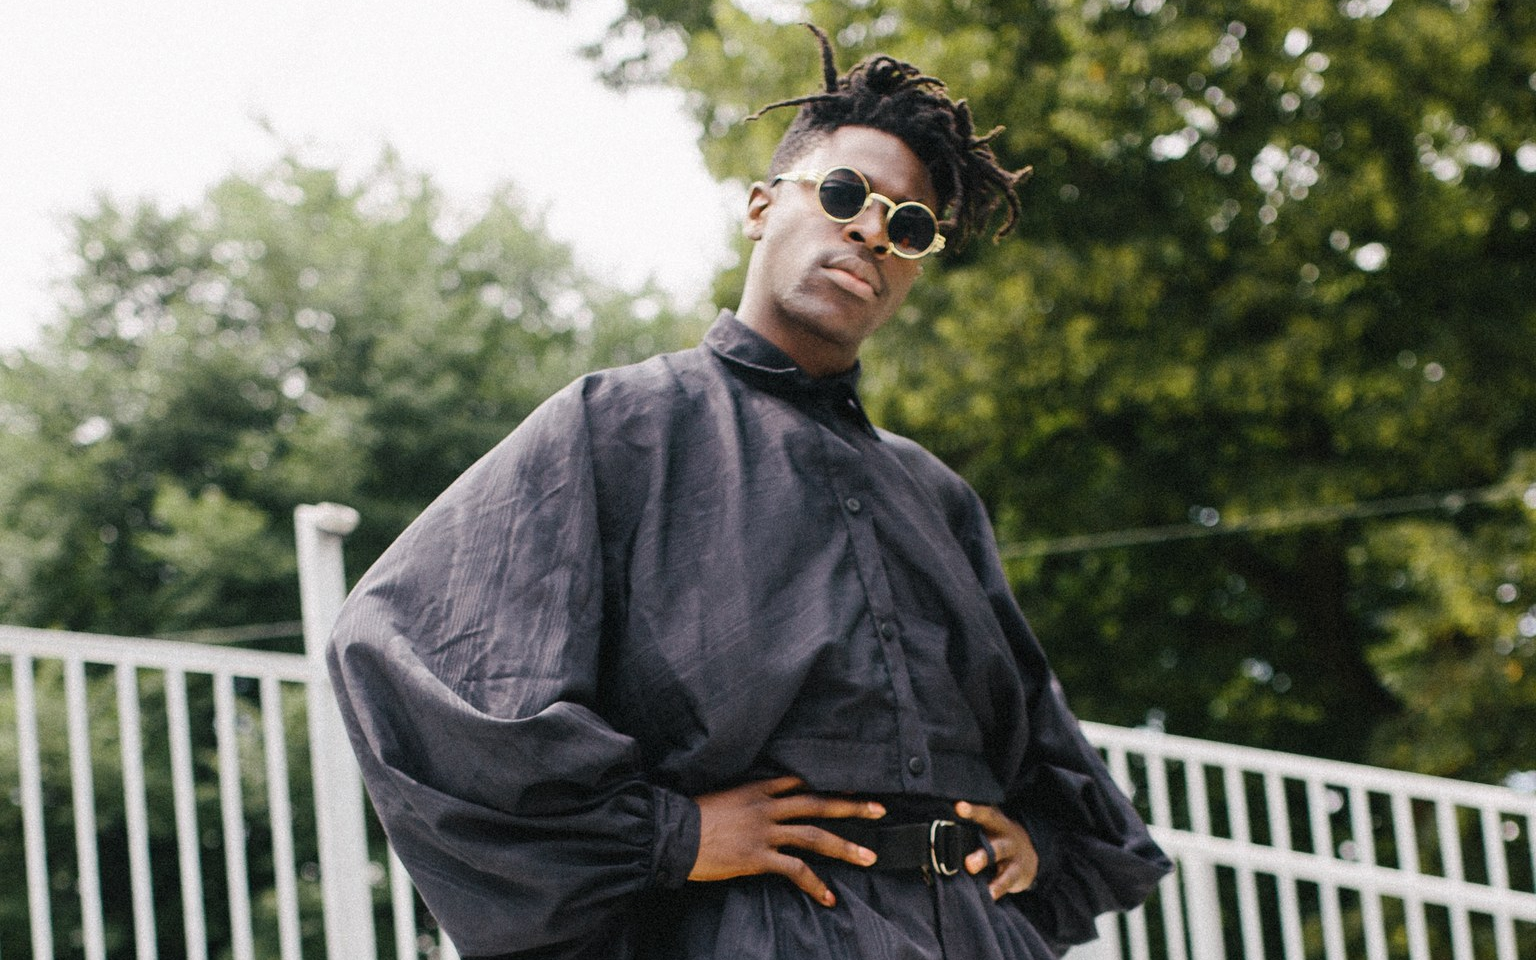 Moses Sumney, SebastiAn, Billie Eilish… 5 novedades musicales de noviembre 'for your ears only'